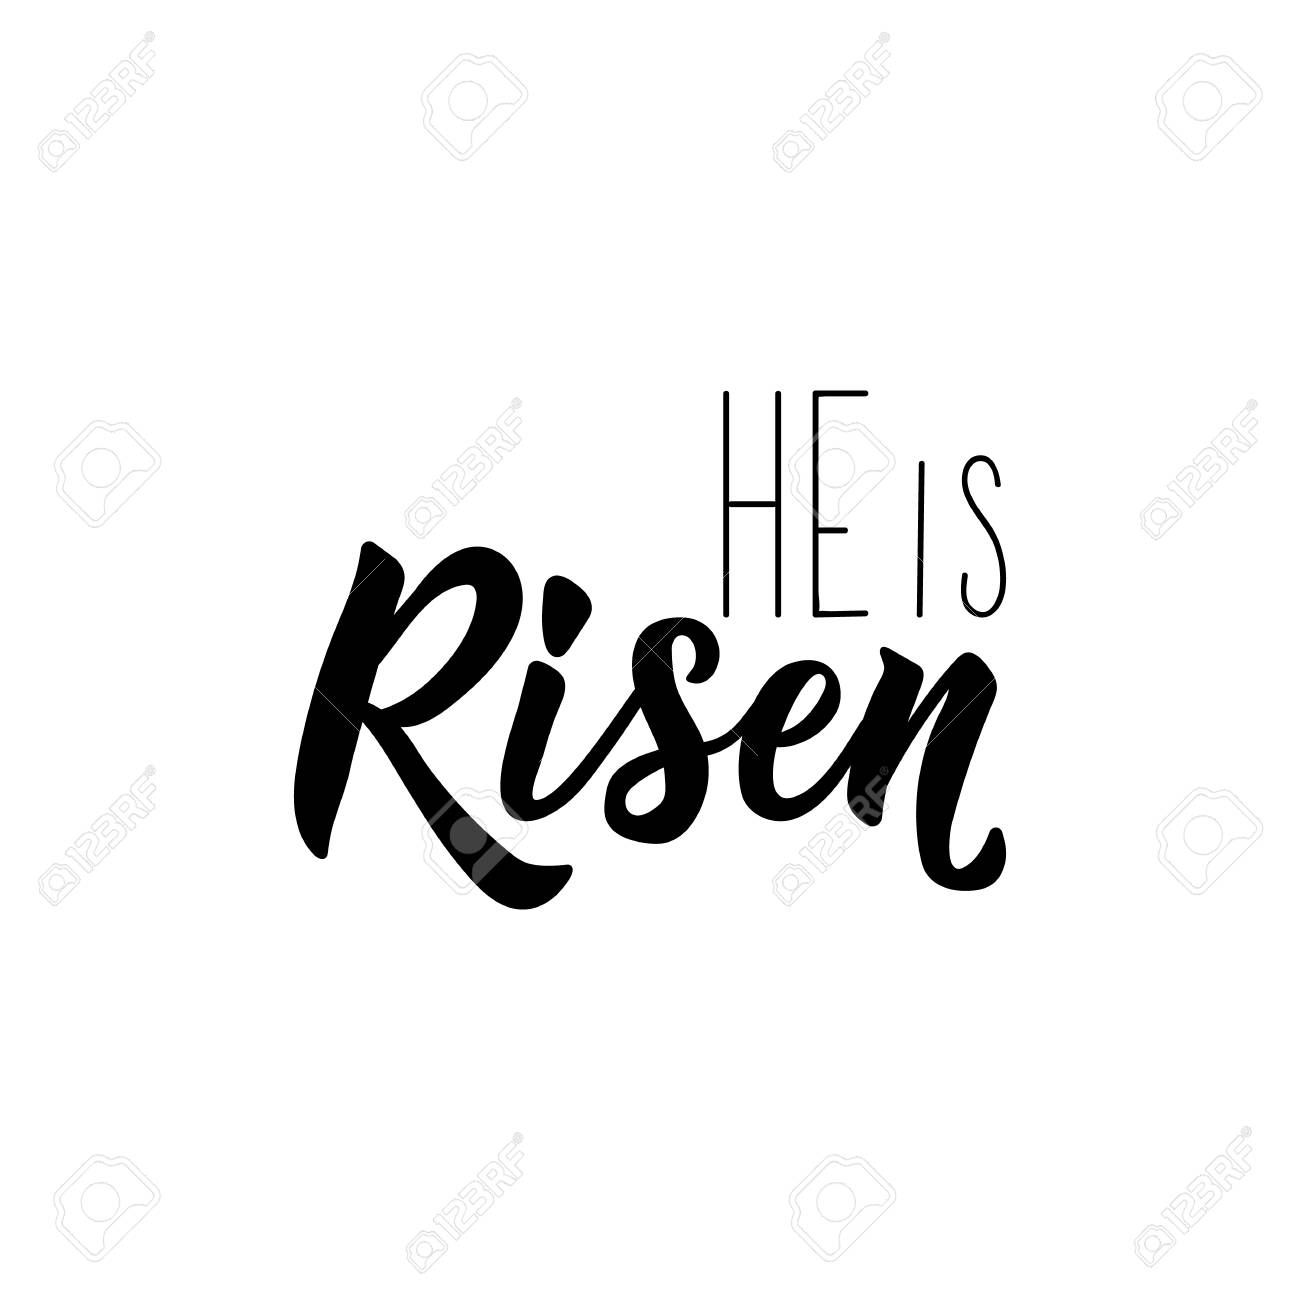 photo relating to He is Risen Printable called He is Risen. Pleased Easter lettering card. estimate toward layout greeting..